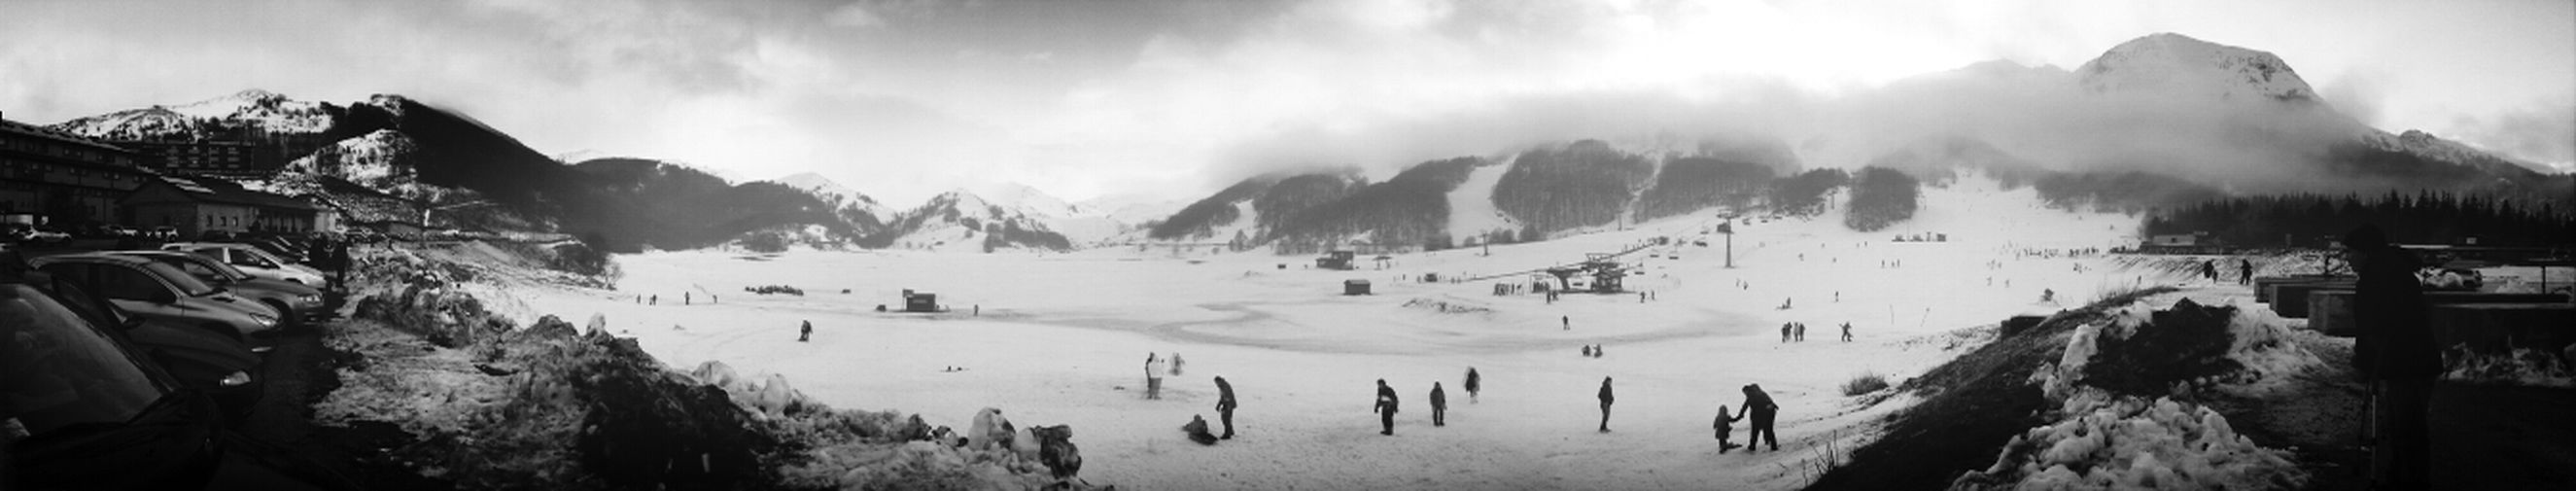 Montagne Cold Winter ❄⛄ Black And White Neve Rethink Things